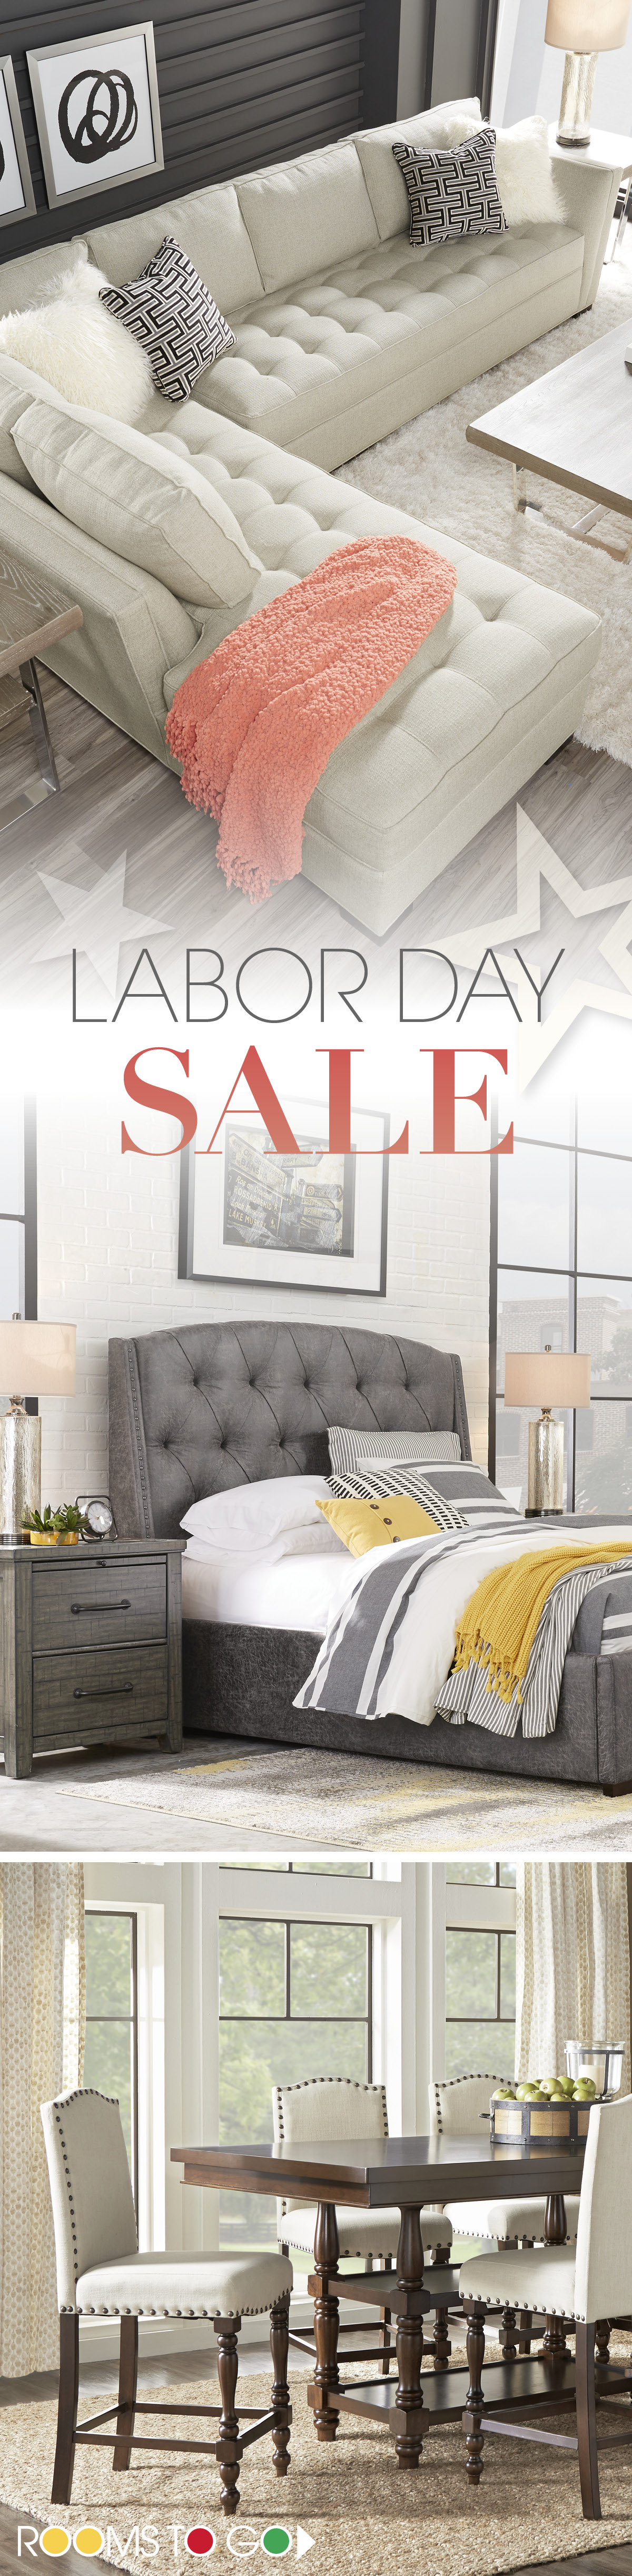 Ready for a room redesign? Shop our Labor Day sale now, and save on ...